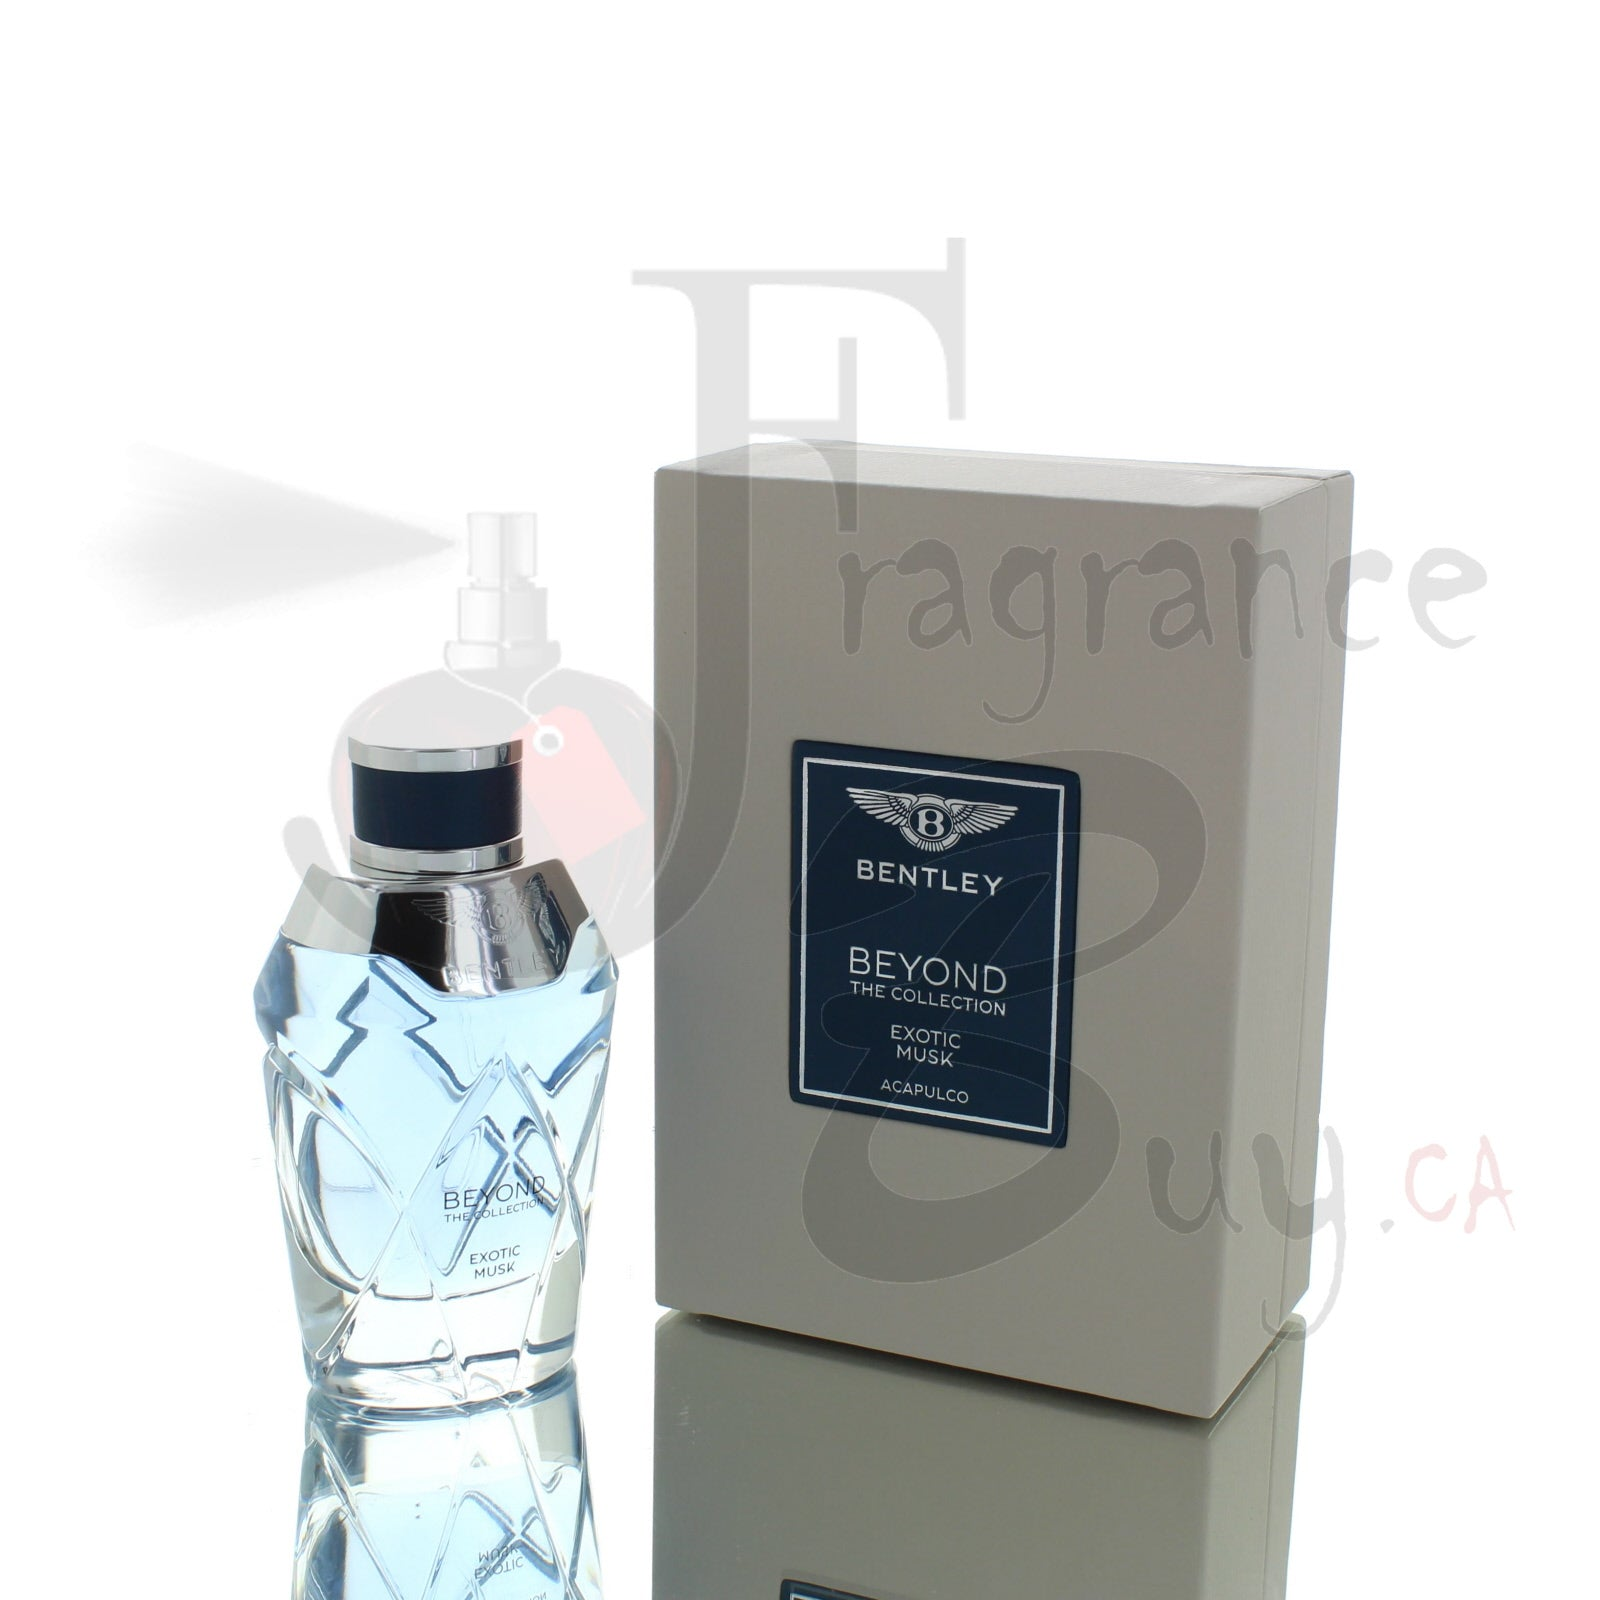 Bentley Beyond The Collection Exotic Musk Man/Woman